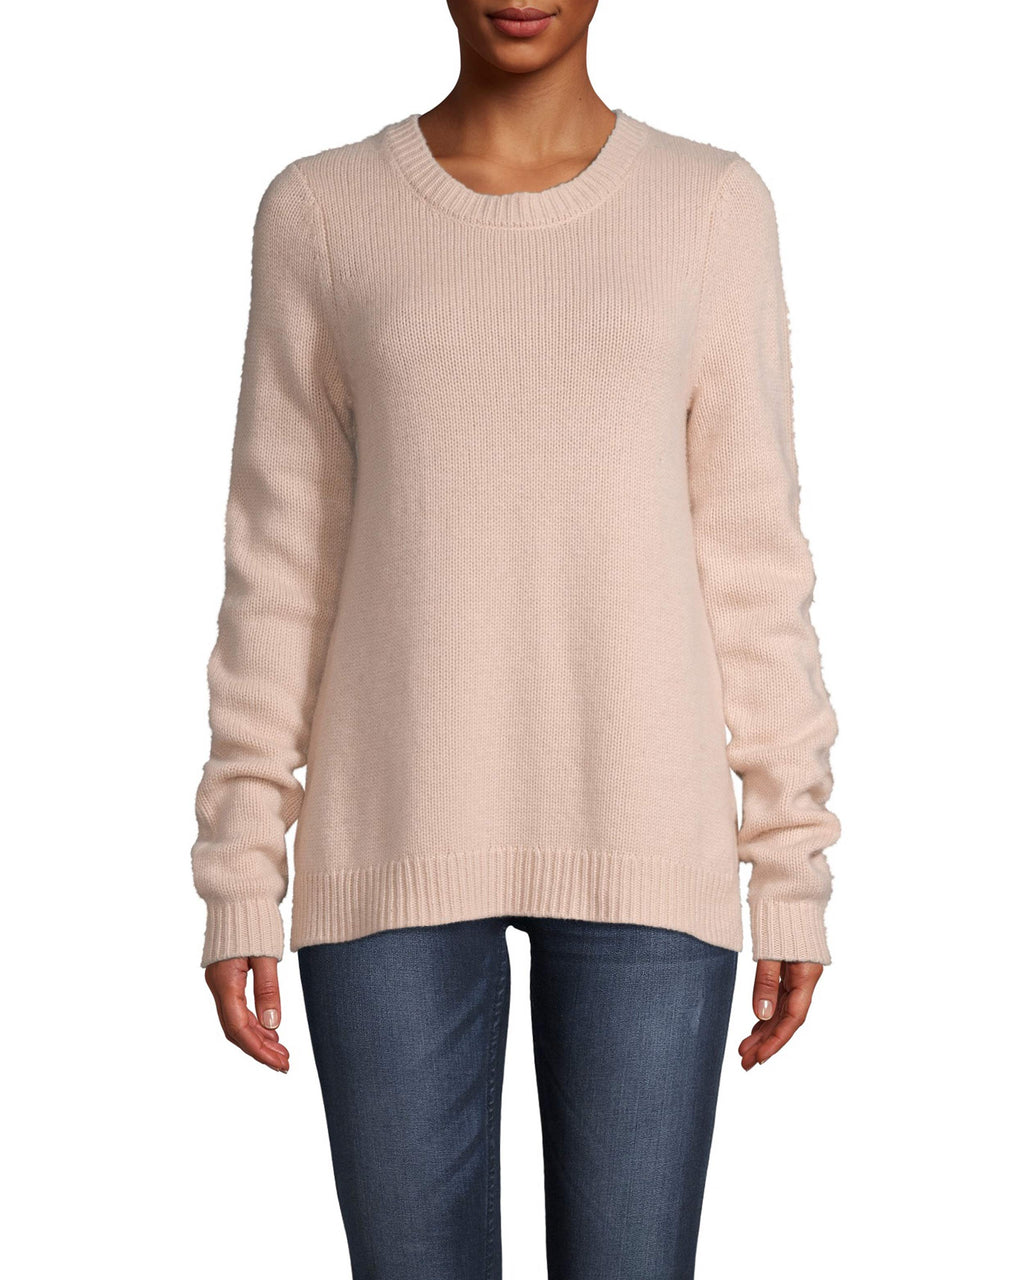 CT18053 - CASHMERE CREW NECK SWEATER - tops - knitwear - This cozy 100% cashmere style will be on repeat all fall long. Designed in two fashion colors to effortlessly pair with our fall line and everything already in your closet. This classic crew neck piece features ribbed detail at the neck and hemline. Add 1 line break Stylist tip: Pair with a mini skirt and your favorite fall boots.